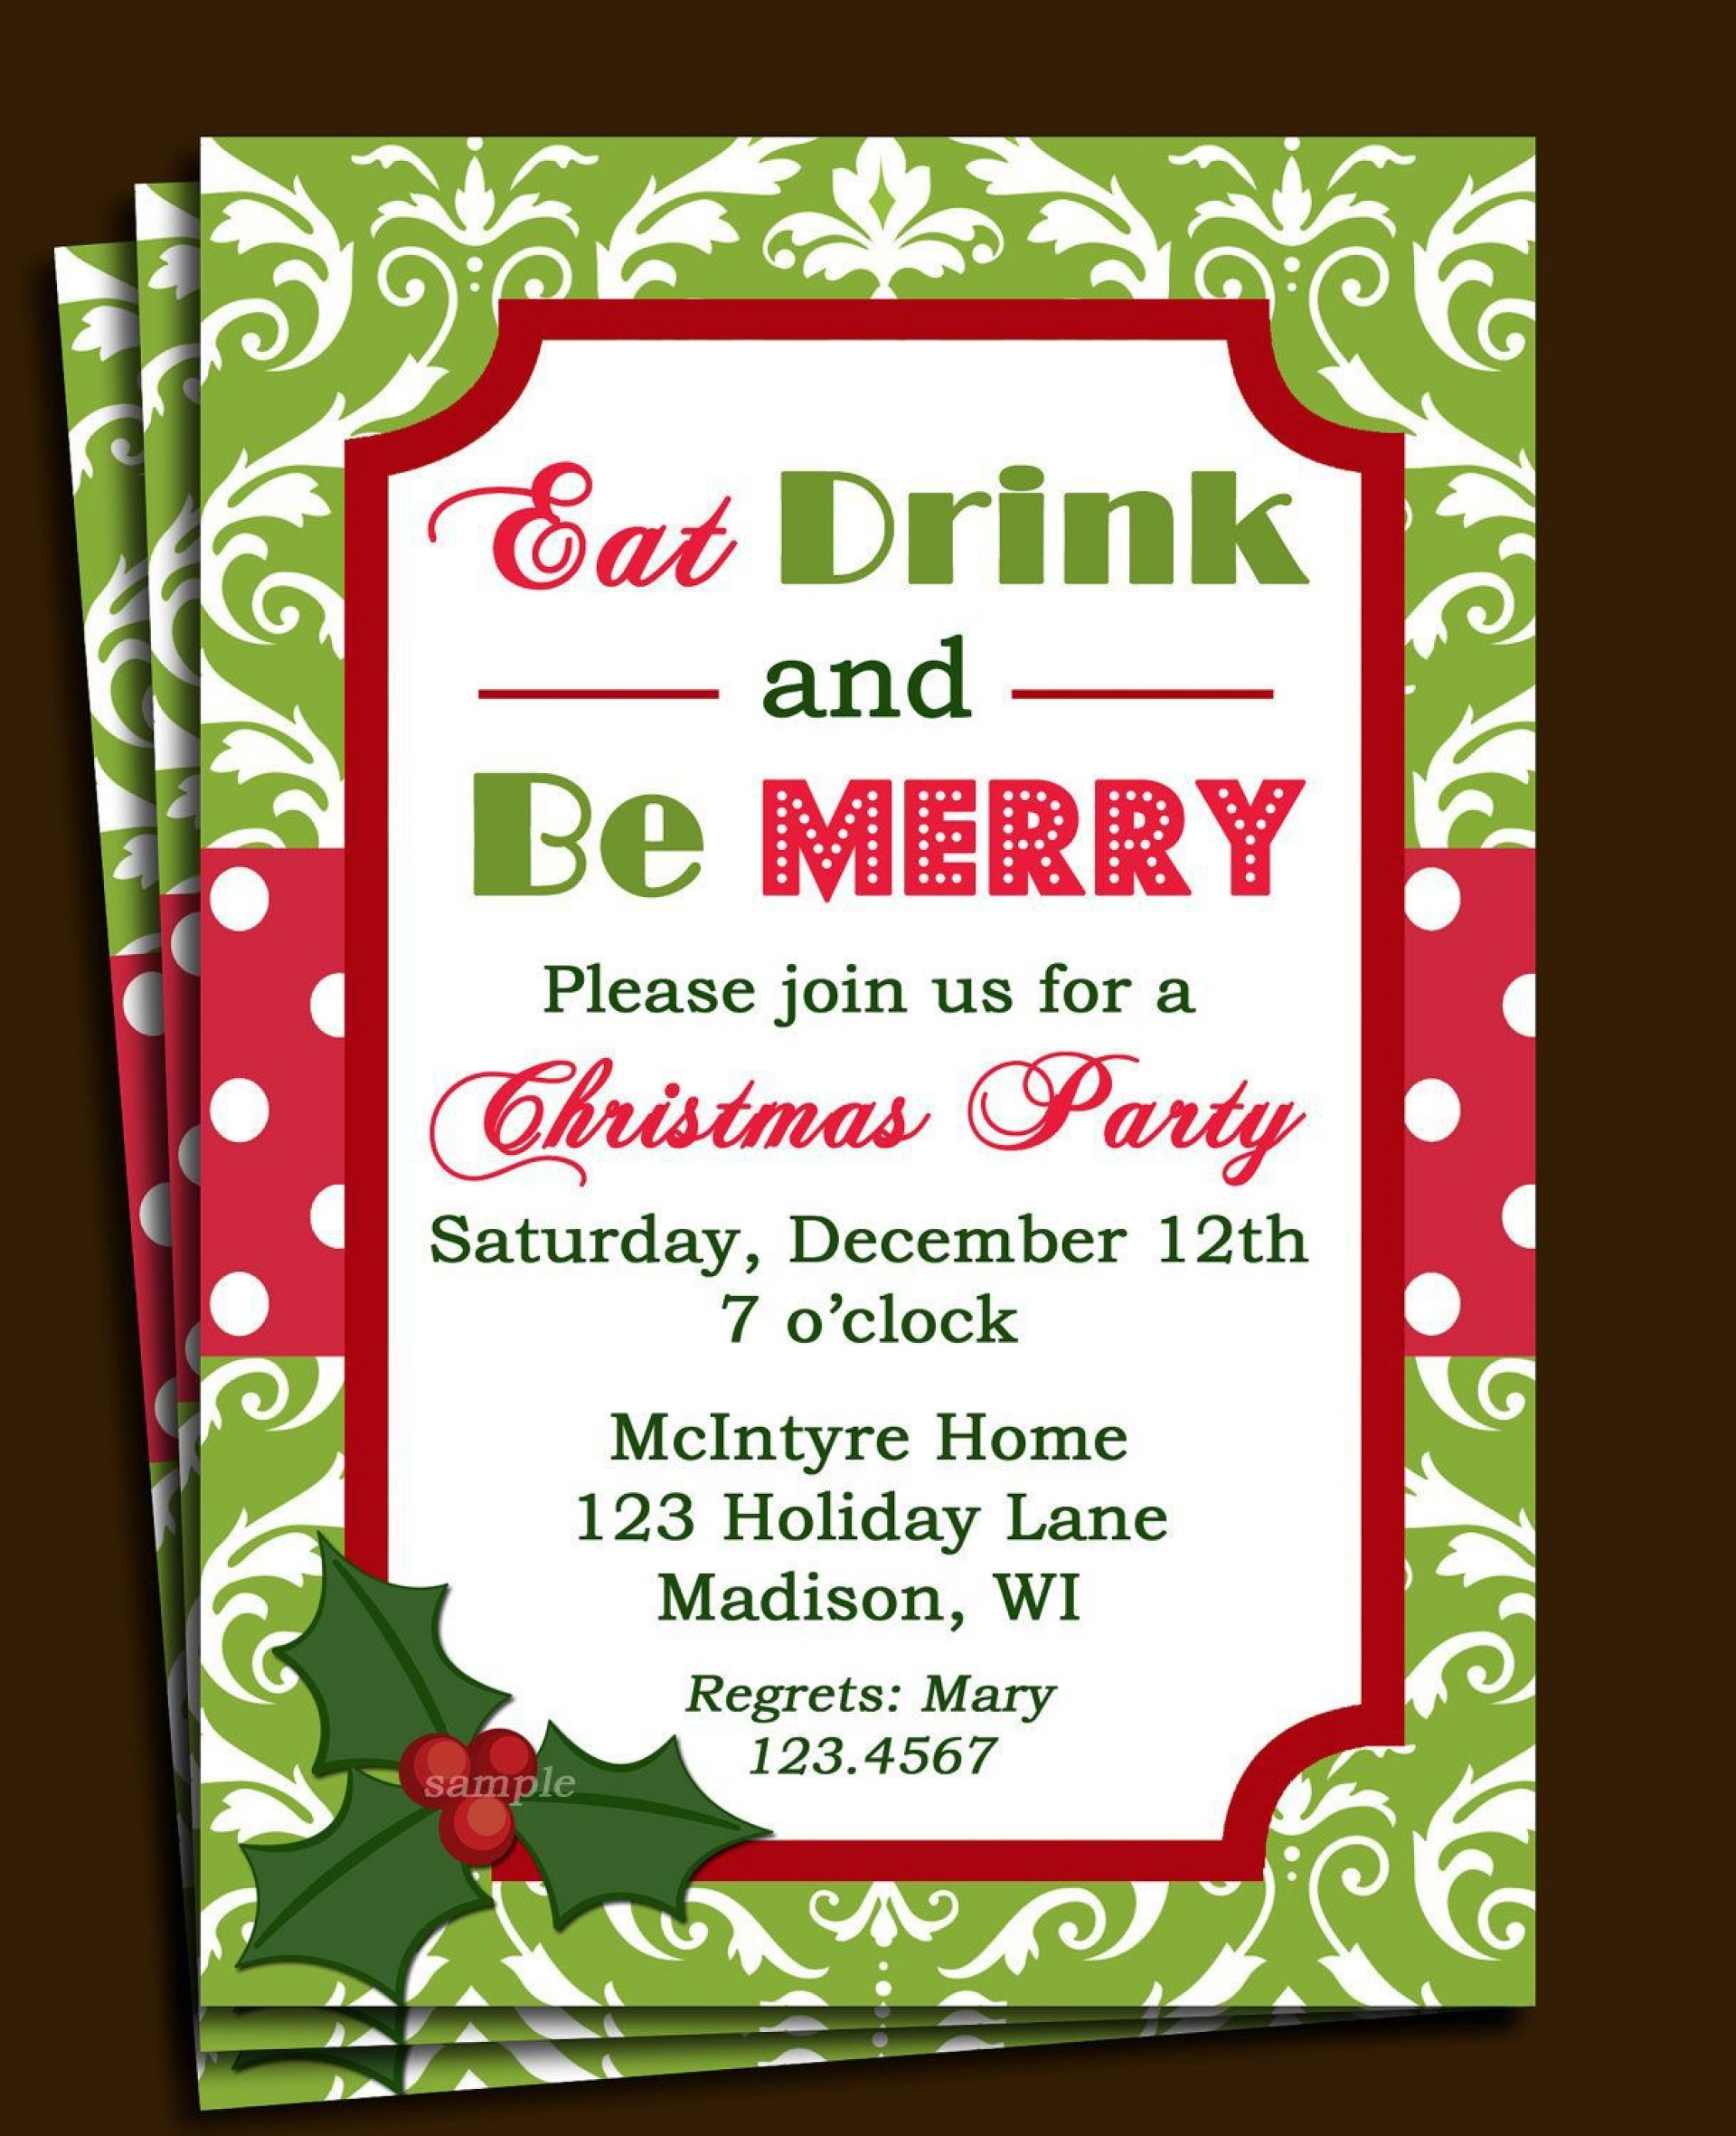 008 Stirring Free Christma Invitation Template Word High Definition  Holiday Party Editable1920